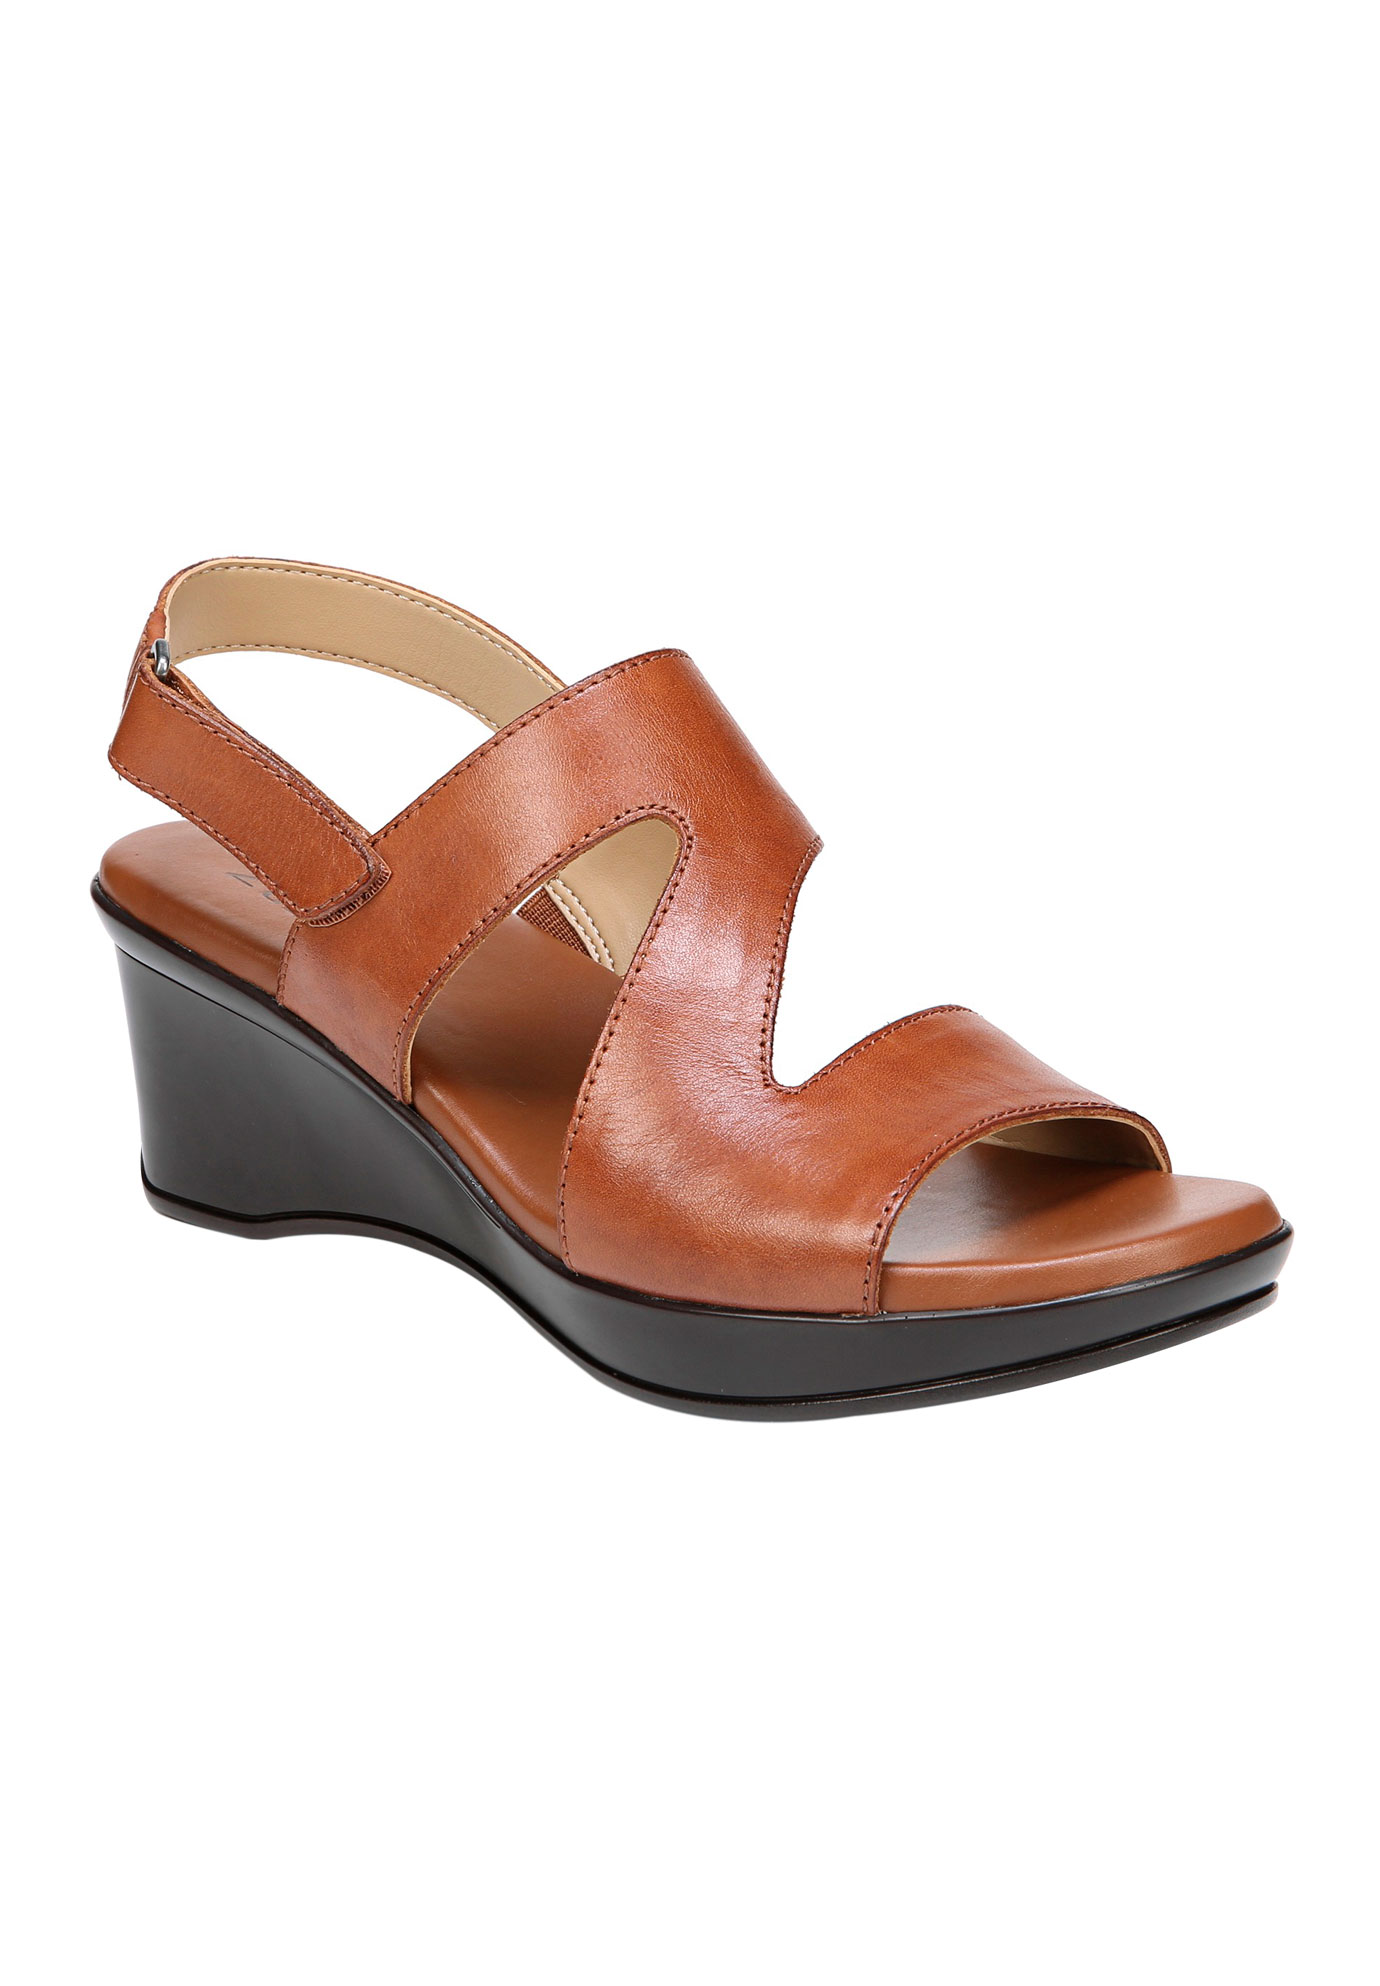 Valerie Sandals by Naturalizer®,